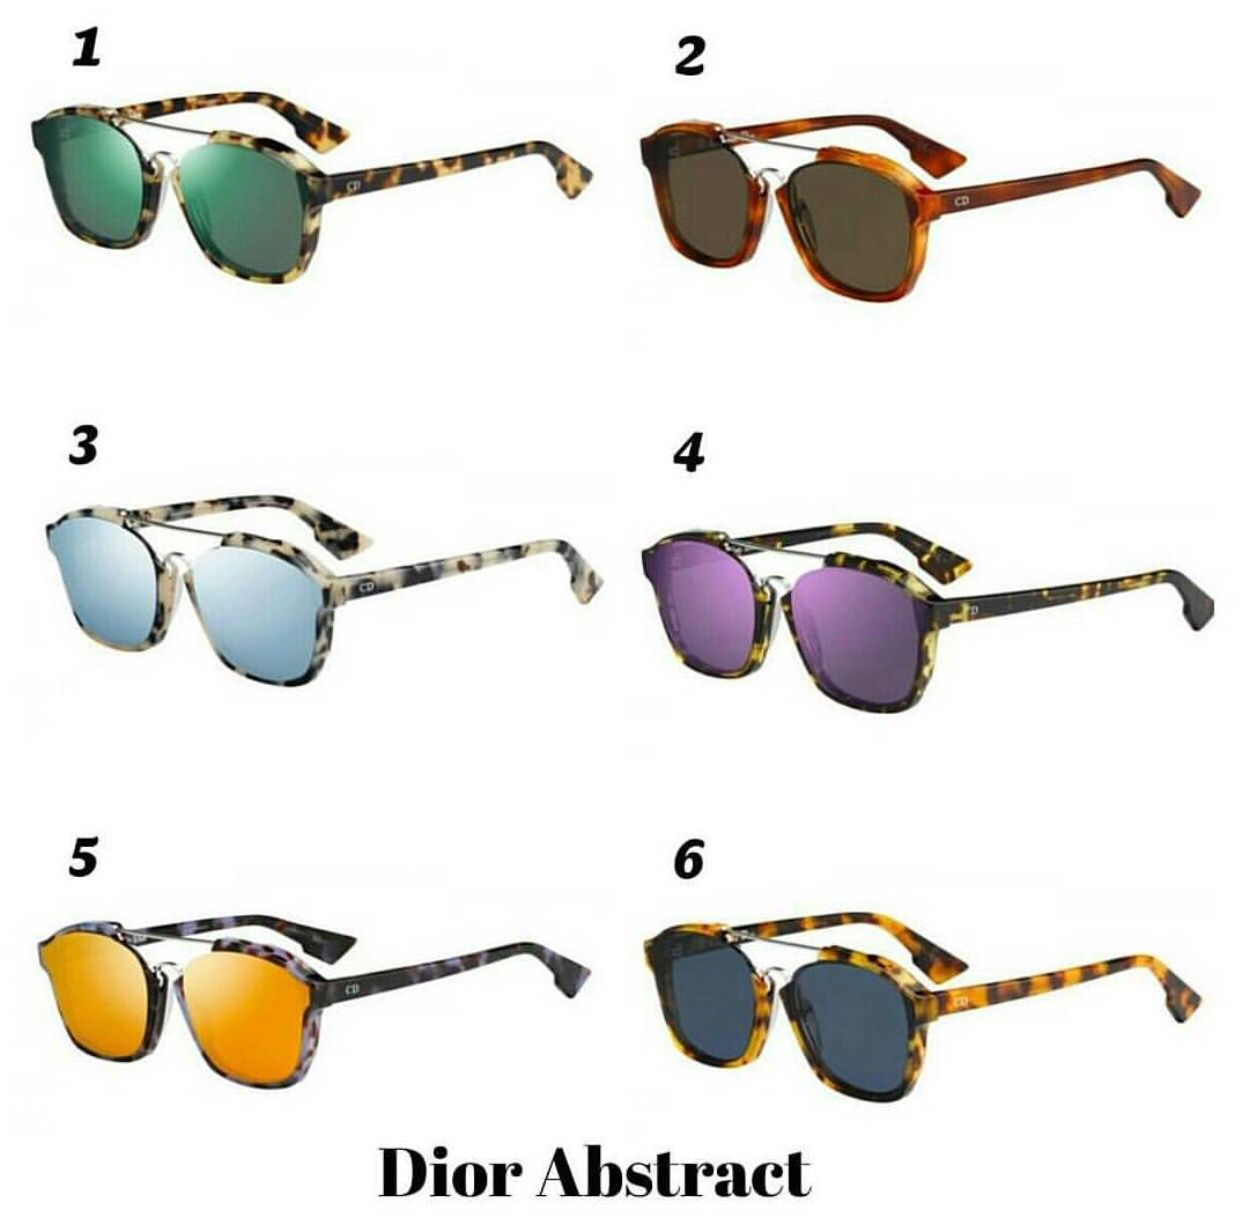 Dior Abstract sunglasses   Eye Gear-Shades   Dior abstract ... 81f169f1bad5